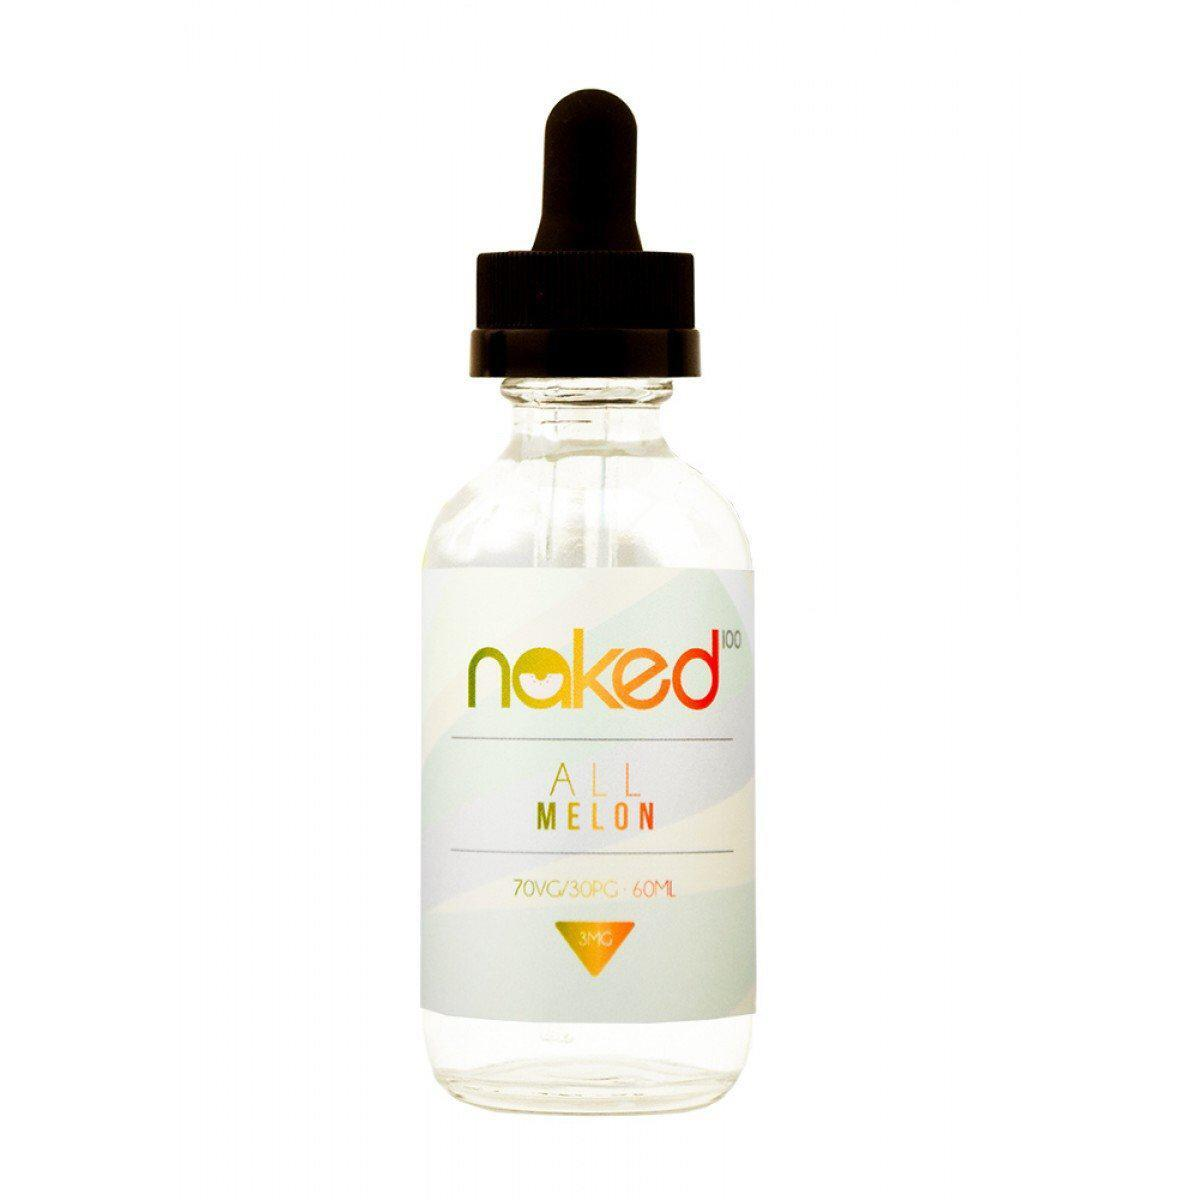 All Melon by Naked100 (60ml) 0mg